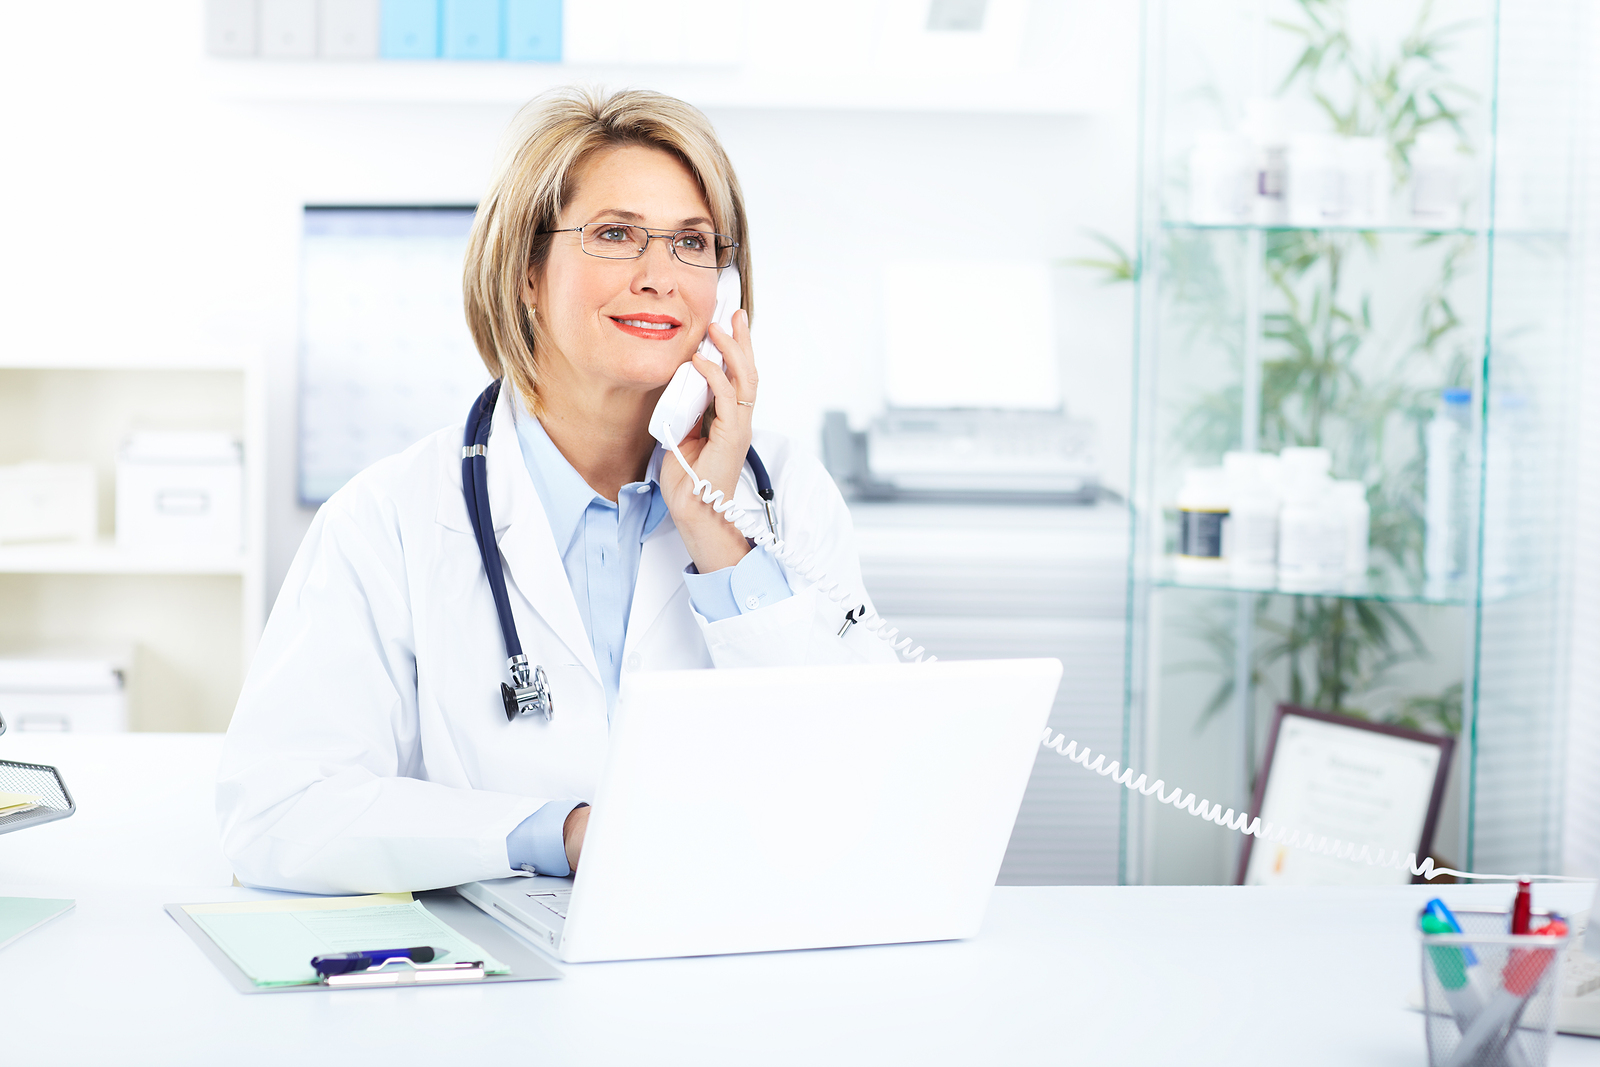 All You Need to Know About the Medical Answering Services